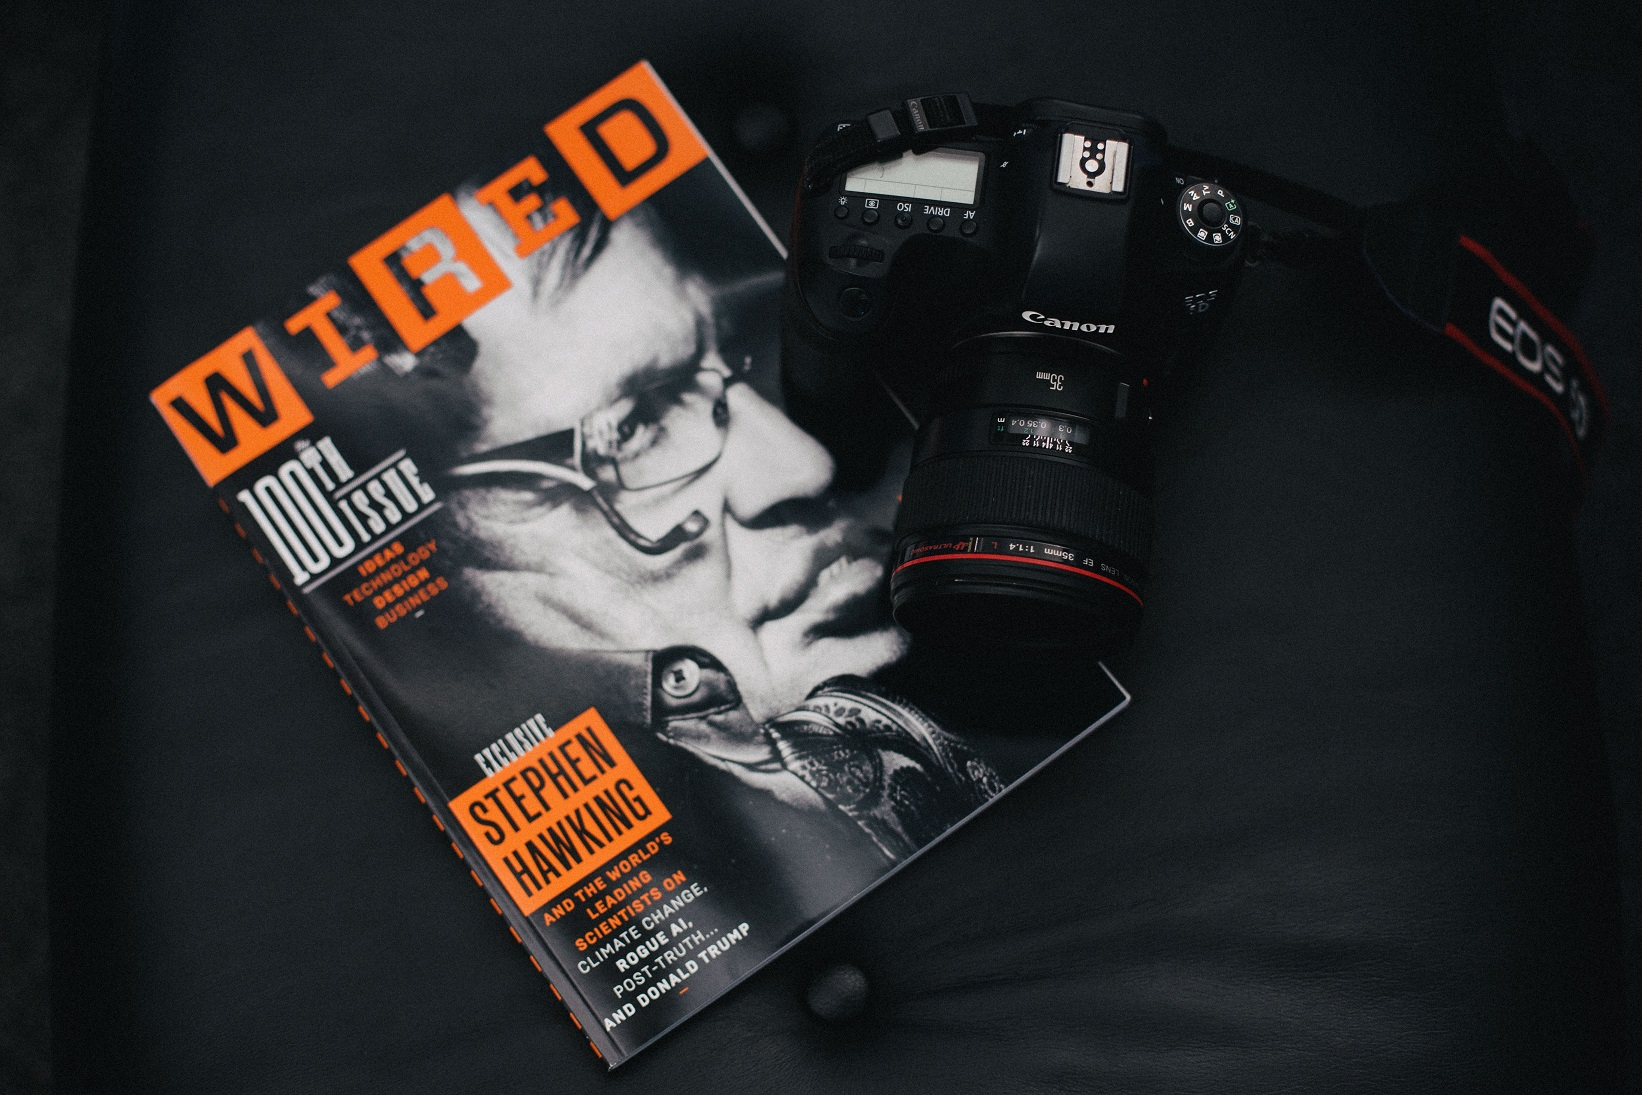 Wired, a magazine with Stephen Hawking on the cover